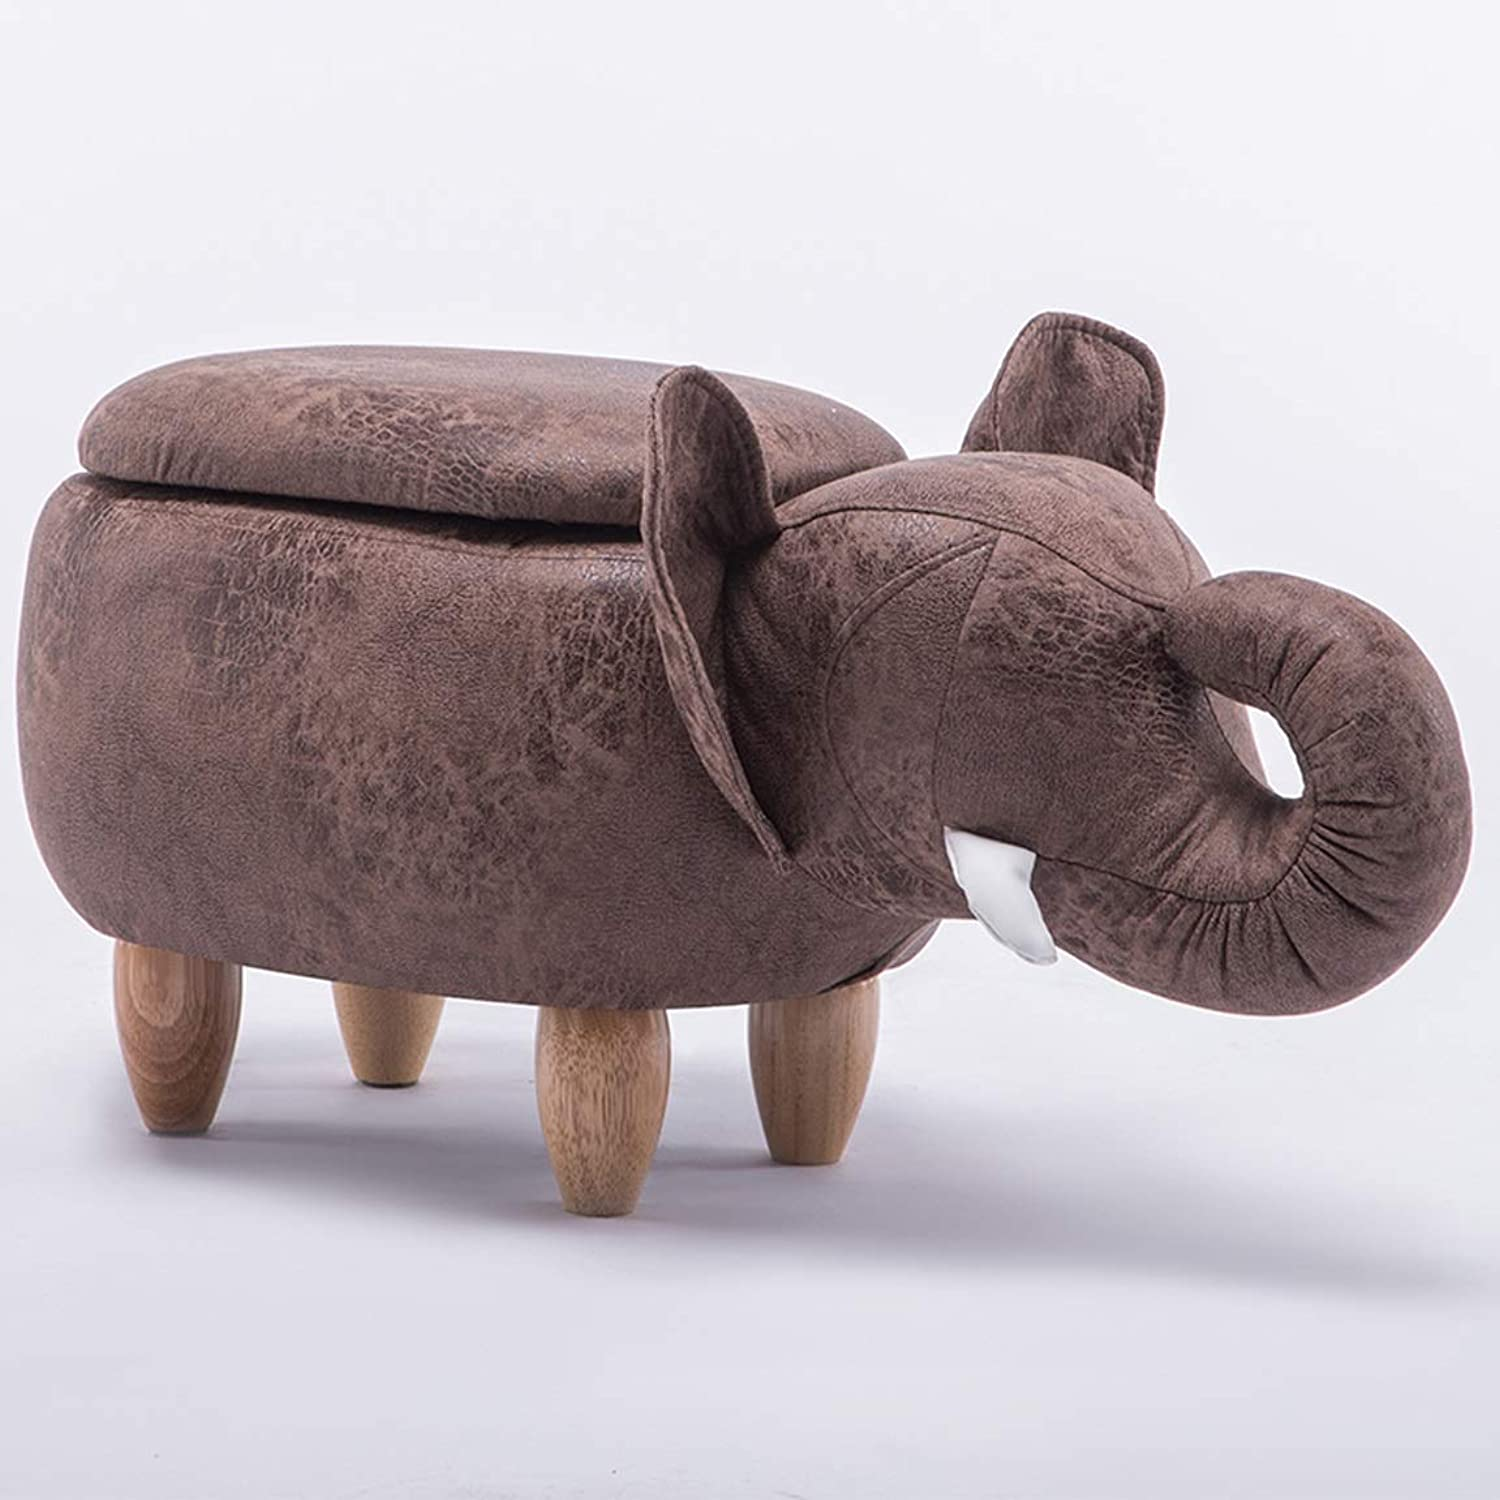 LRW Elephant Change shoes Stand Creative Sofa Storage Stand Low Stand Cartoon Test shoes Stand 2